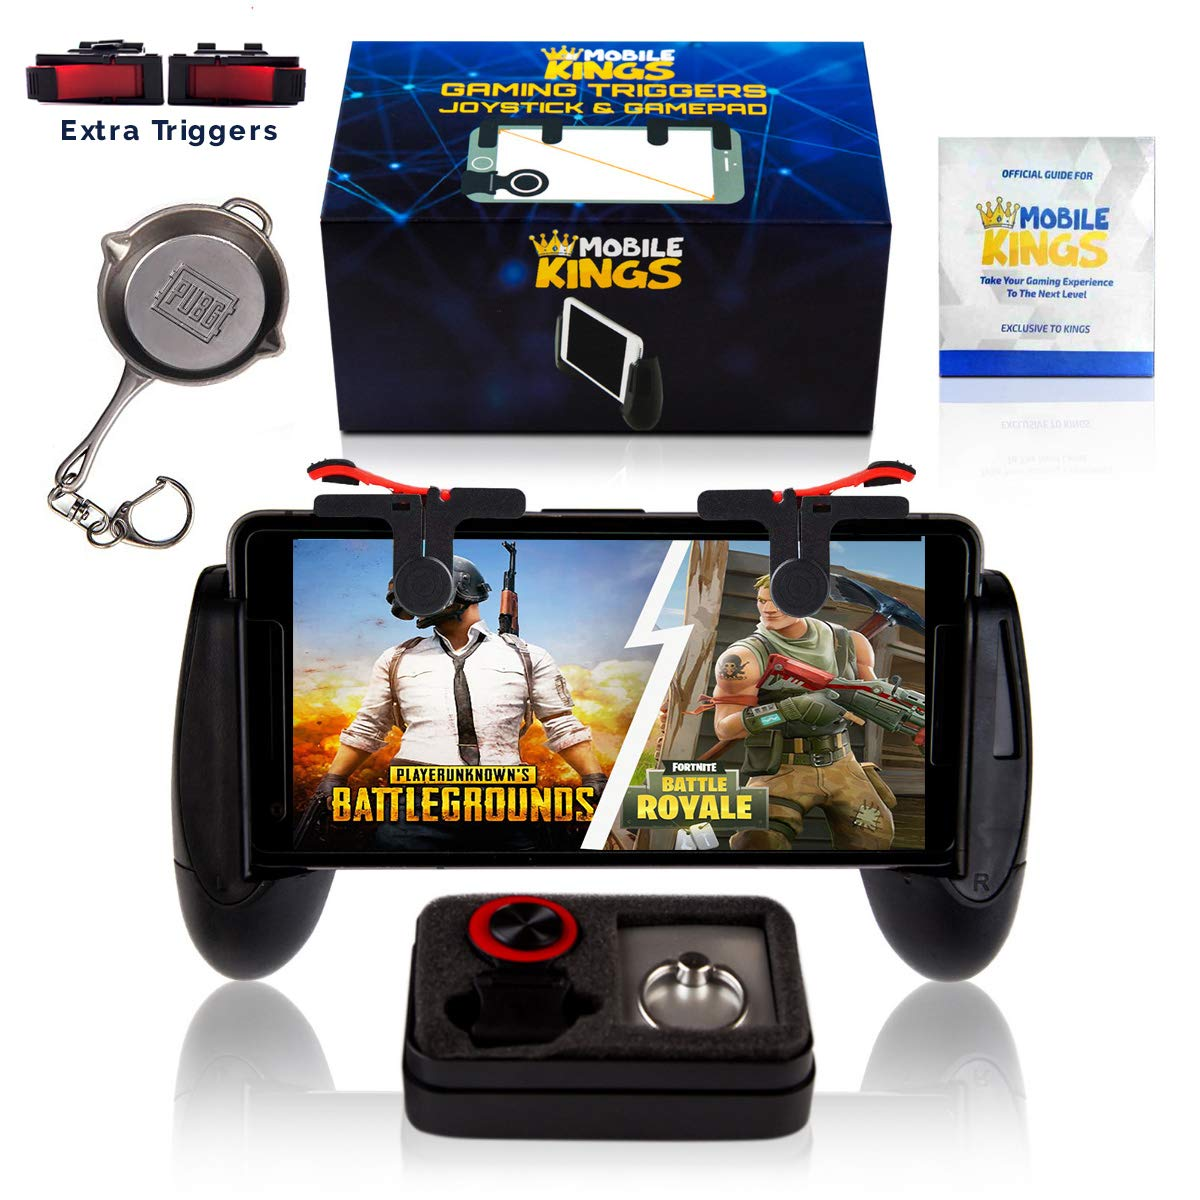 New mobile controller compatible with Pubg, Phones sizes 5 3in-7in,  Cellphone triggers for mobile gaming, Gaming accessories Phone Bundle,  iPhone &